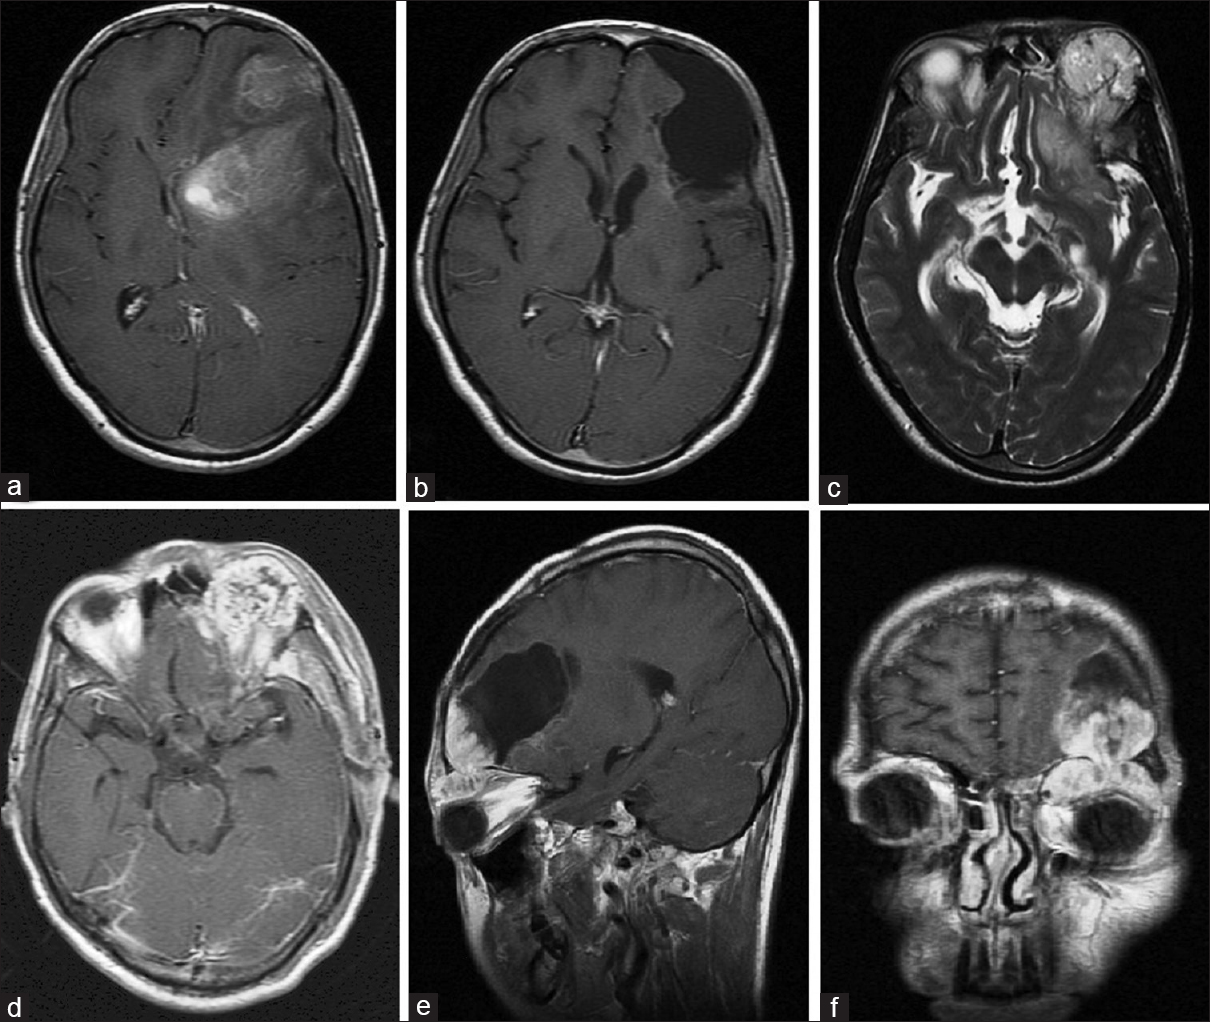 Figure 4: T1 magnetic resonance imaging (MRI) brain during the first admission showing a large, enhancing mass in the left frontal lobe (a). Follow-up MRI showing no recurrence (b). T2 MRI at the second admission showing a recurrent lesion in relation to the left orbit (c). Axial section showing heterogeneous enhancement of the lesion (d). Cranial-caudal extent of the lesion (e). Extension of the lesion into the orbit (f)